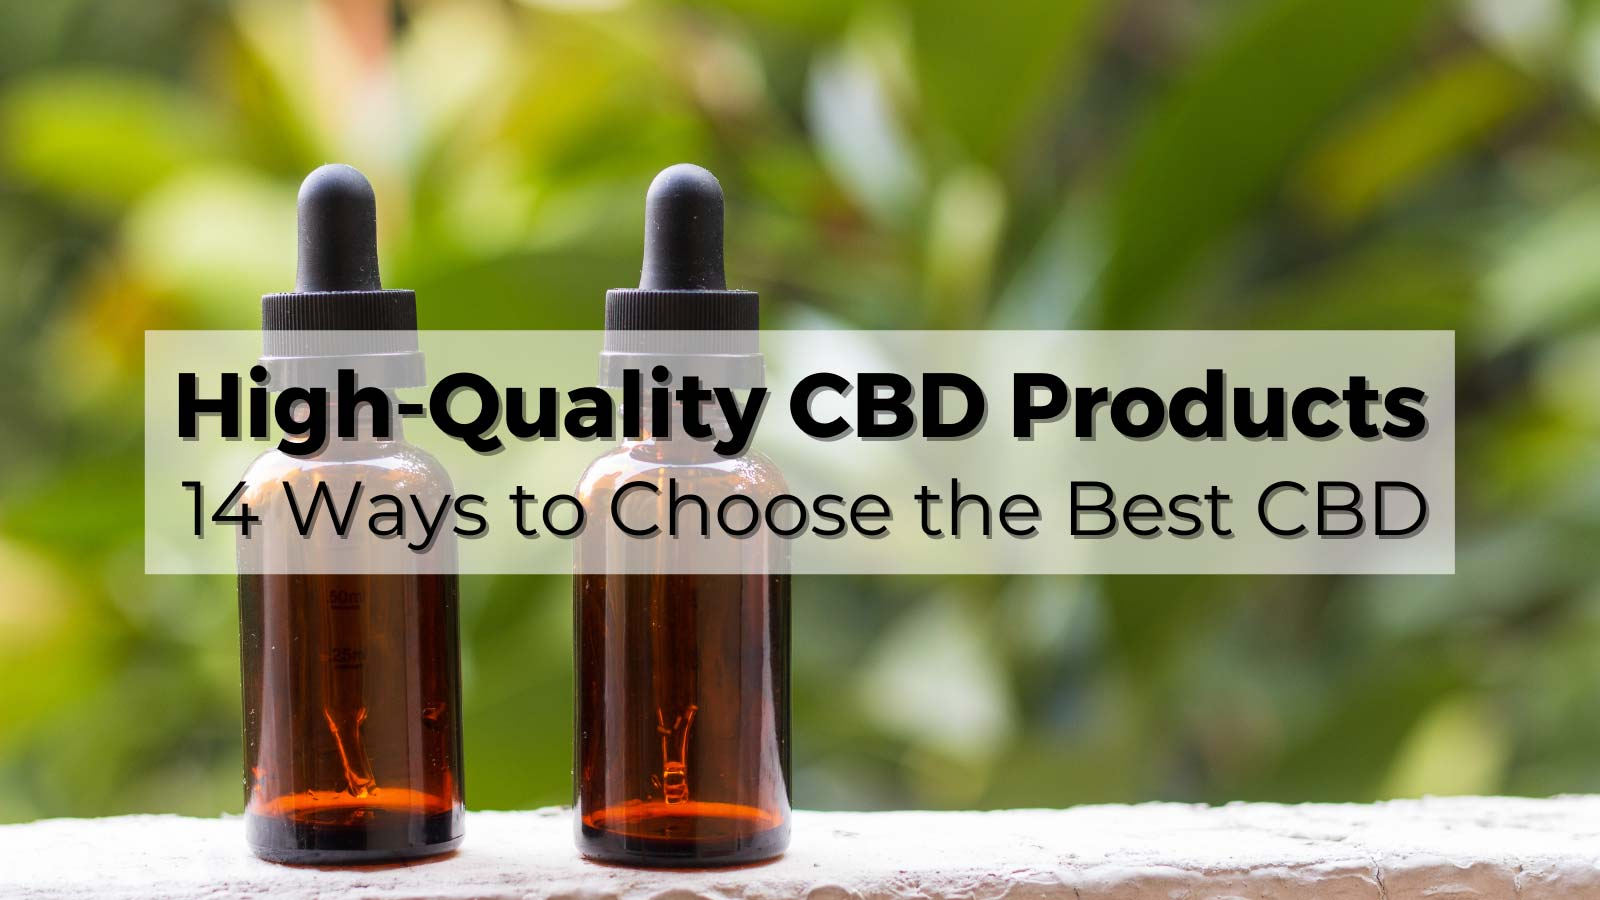 High Quality CBD Products Feature Image